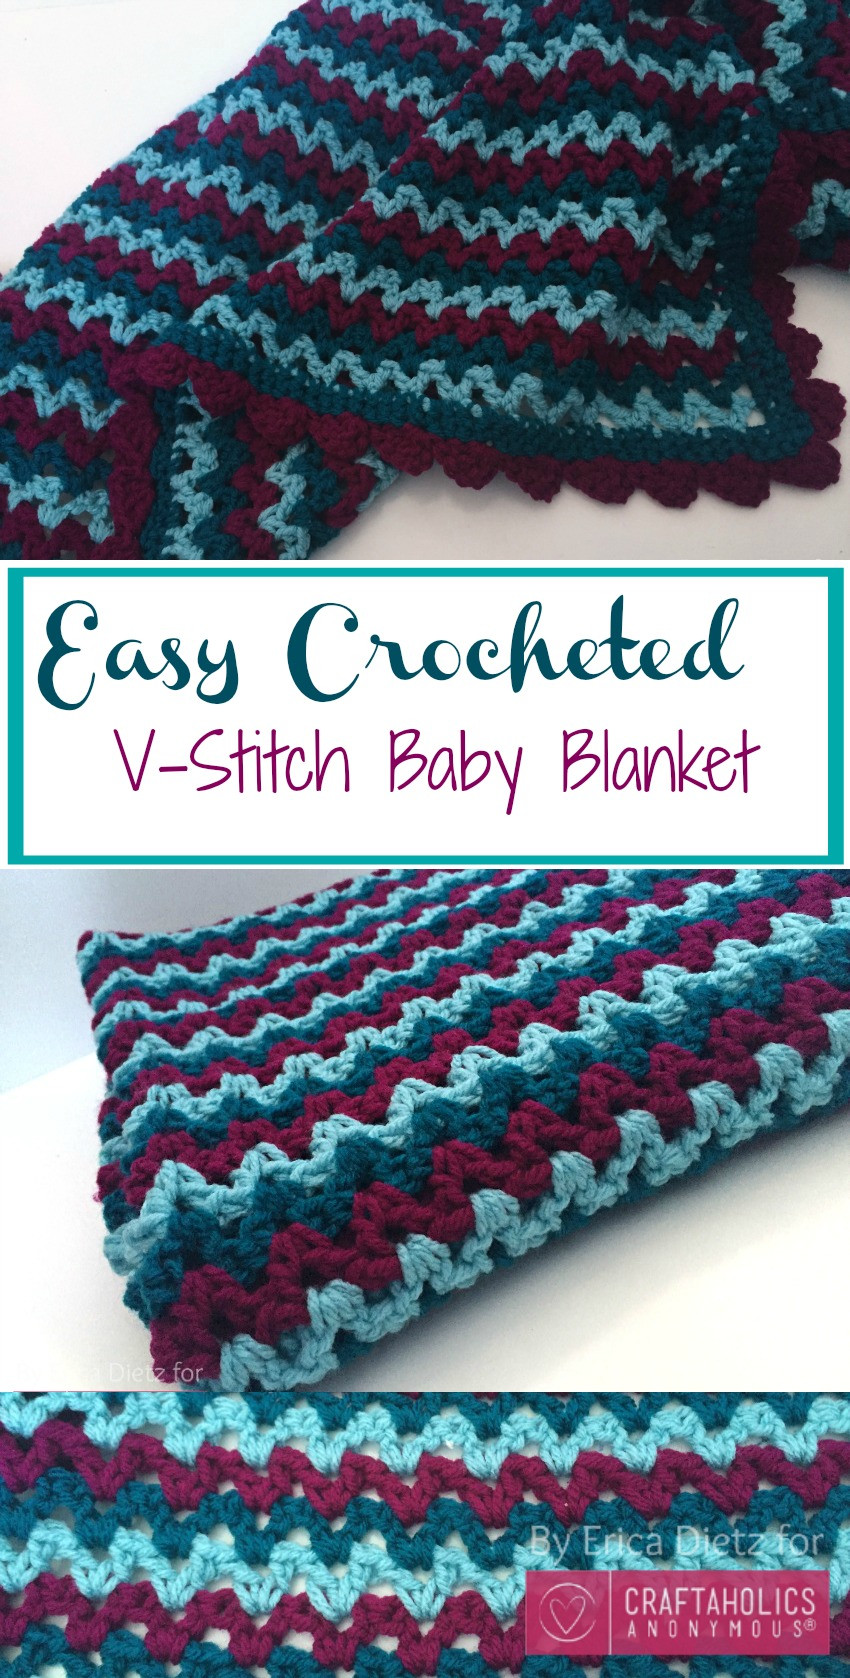 Crochet Stitches for Blankets Beautiful Craftaholics Anonymous Of New 42 Images Crochet Stitches for Blankets